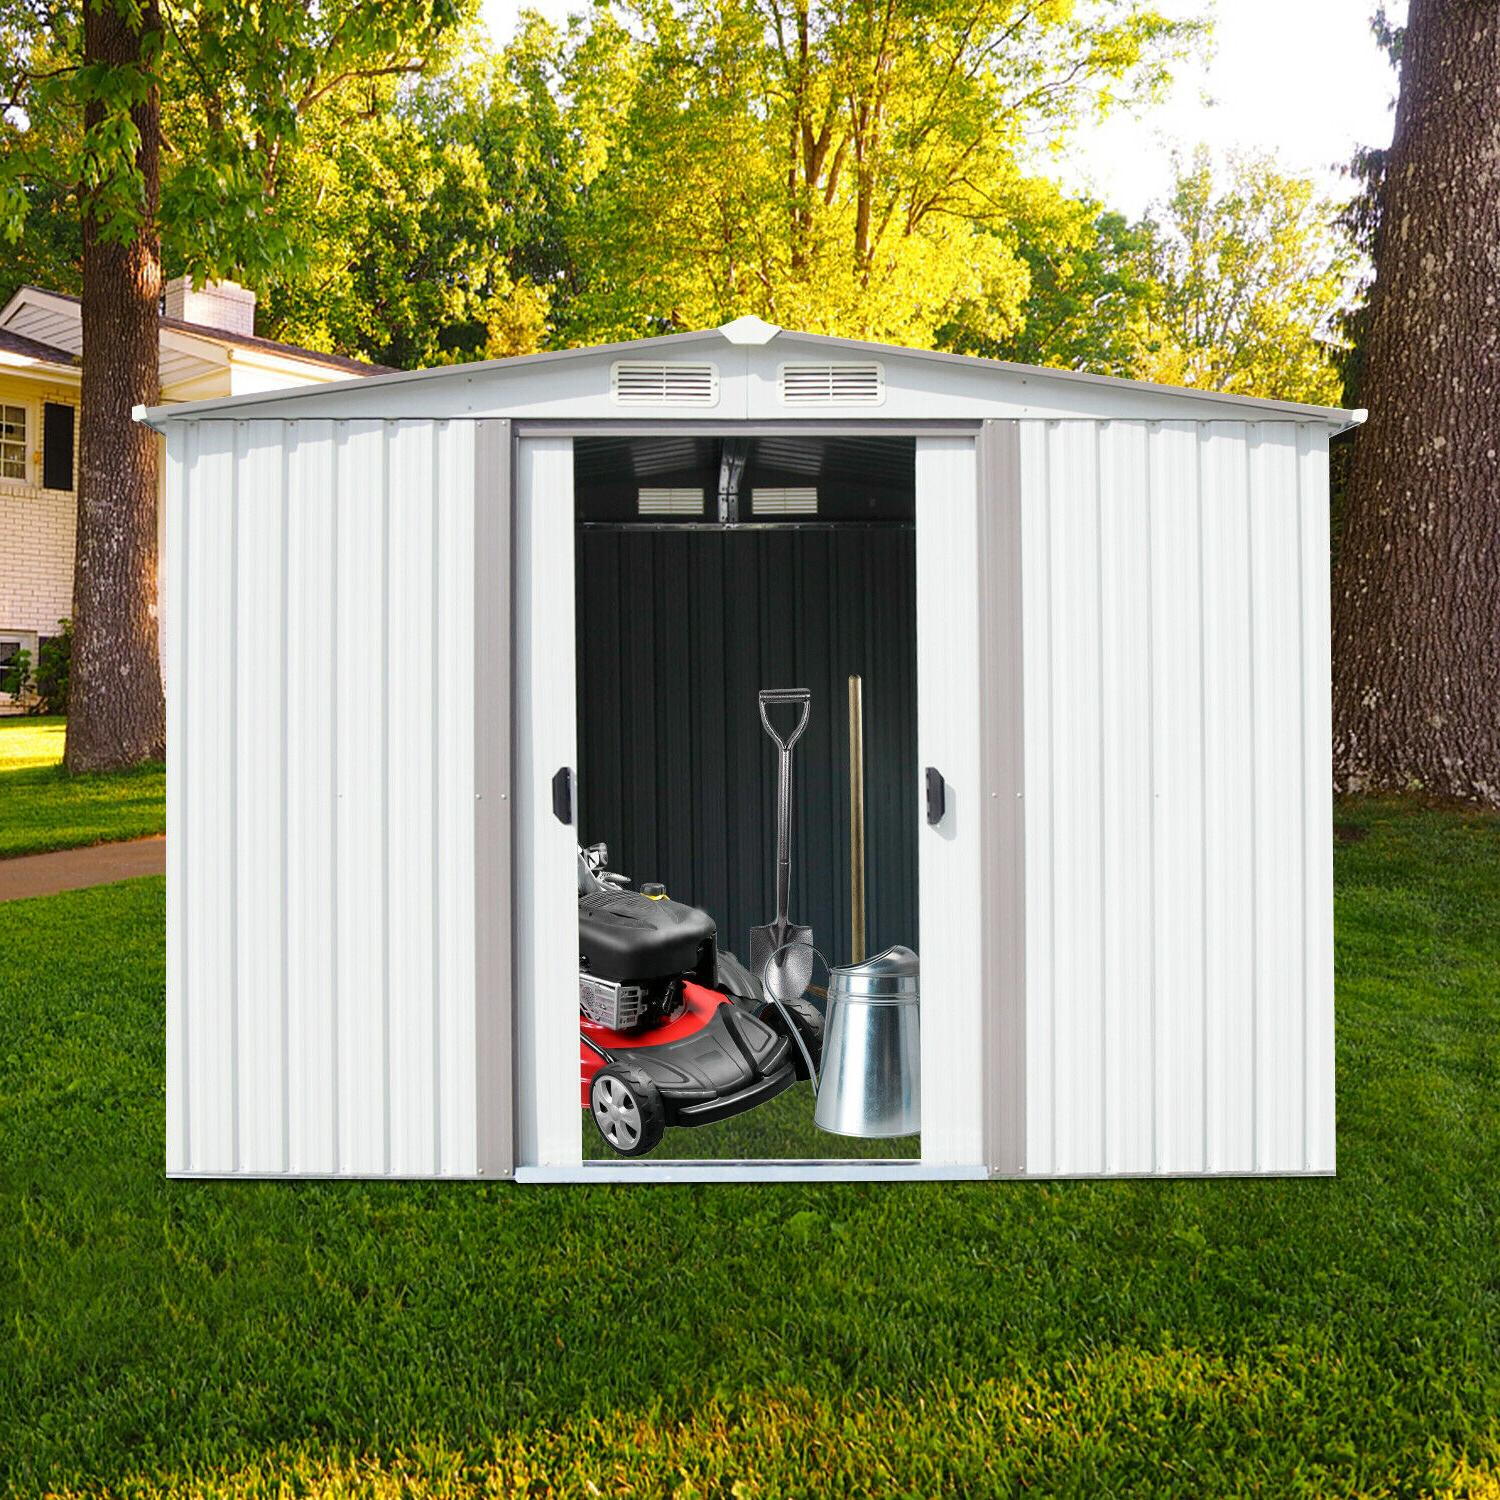 8'x6' Outdoor Storage Waterproof Toolshed Lawn